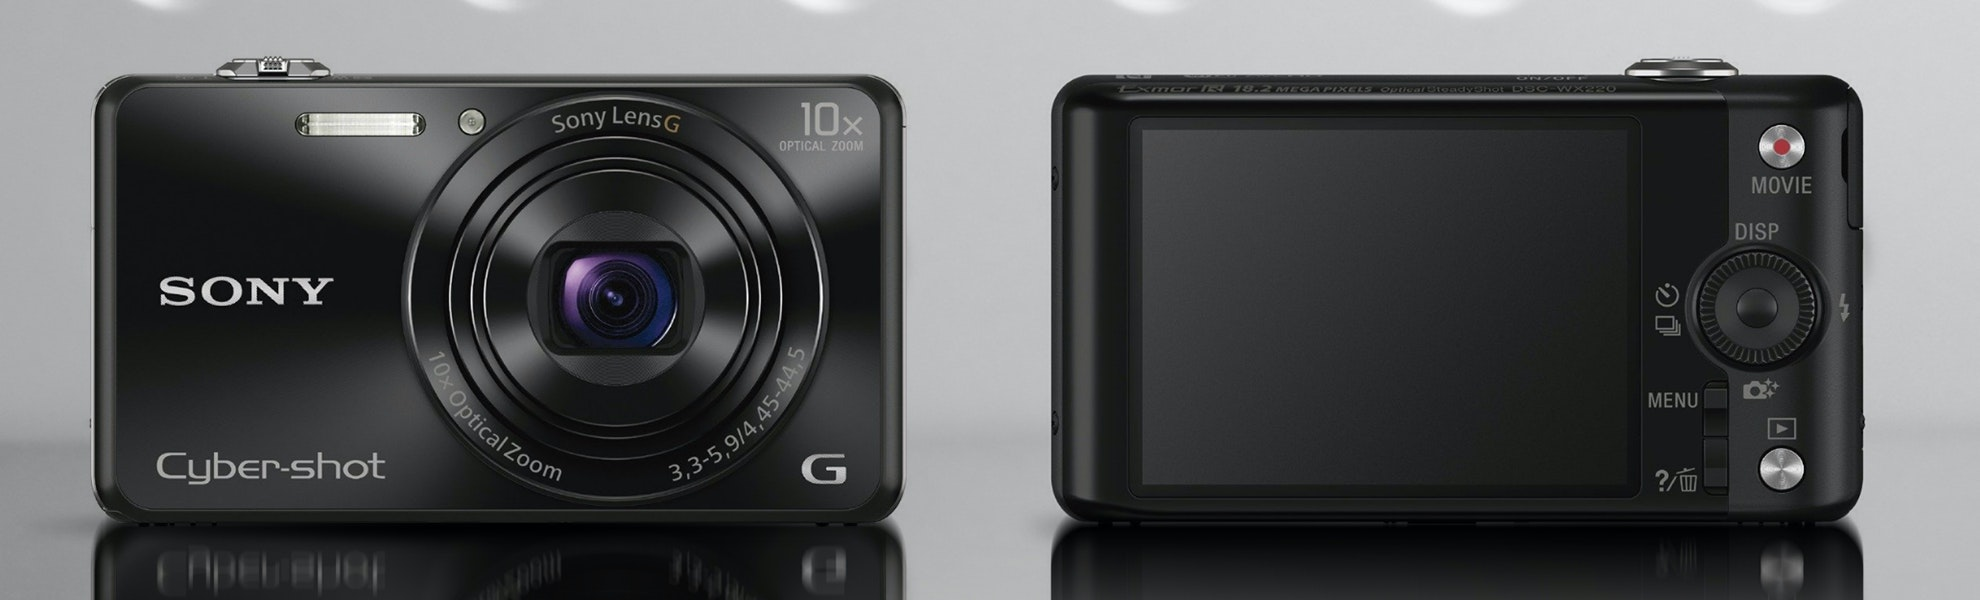 Sony WX220 Compact Camera